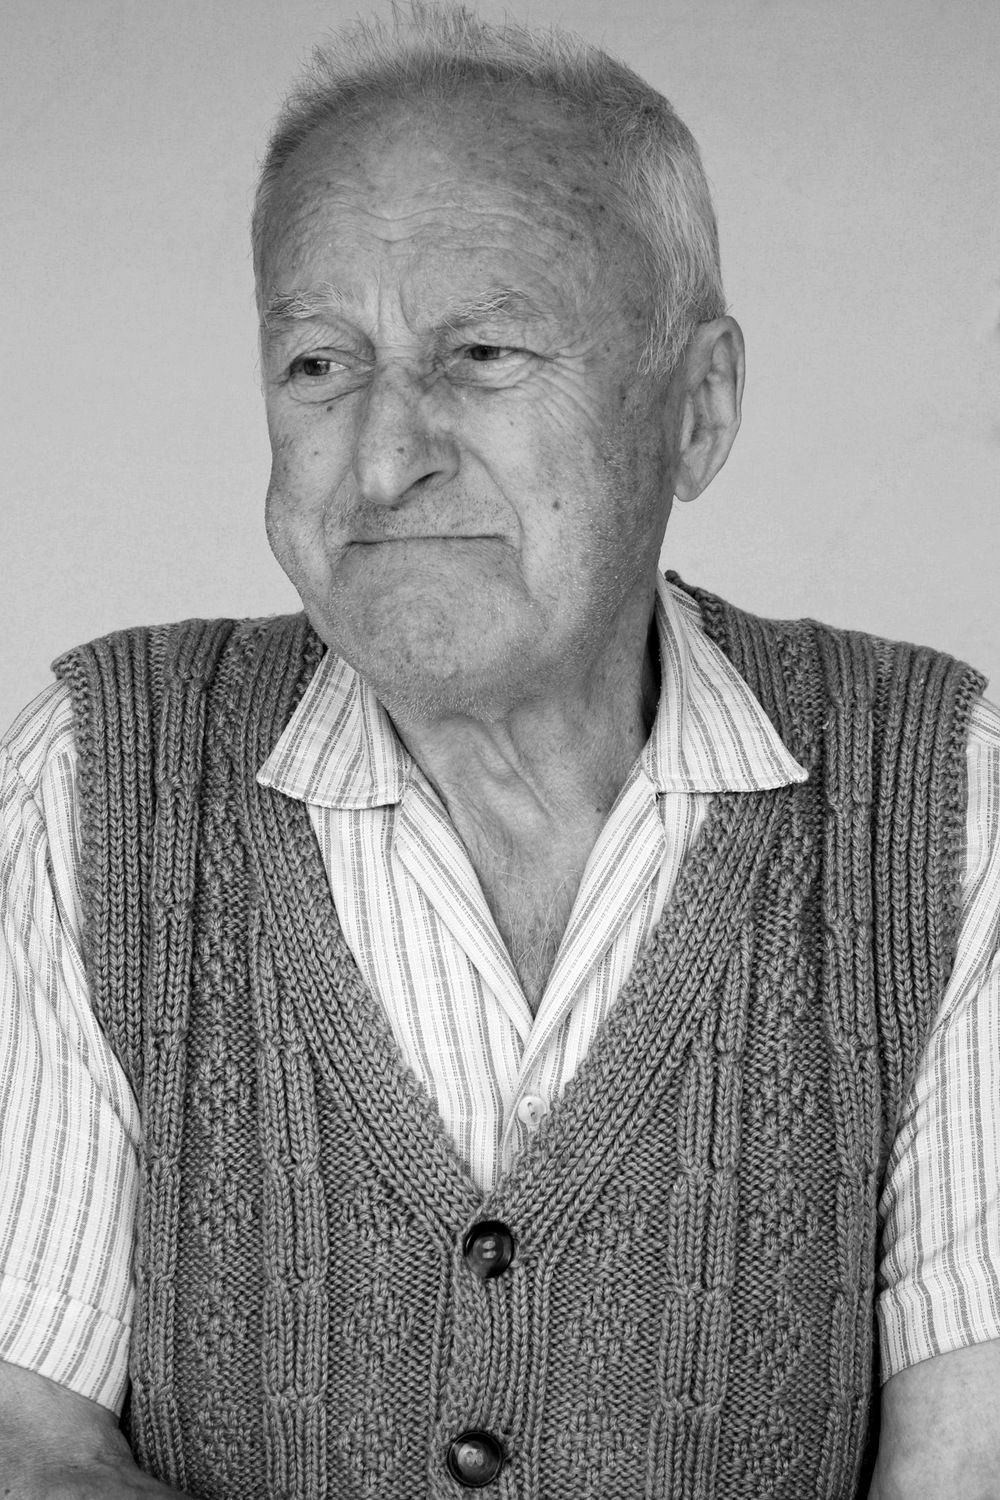 Portrait of Benio, Oreshak, Bulgaria